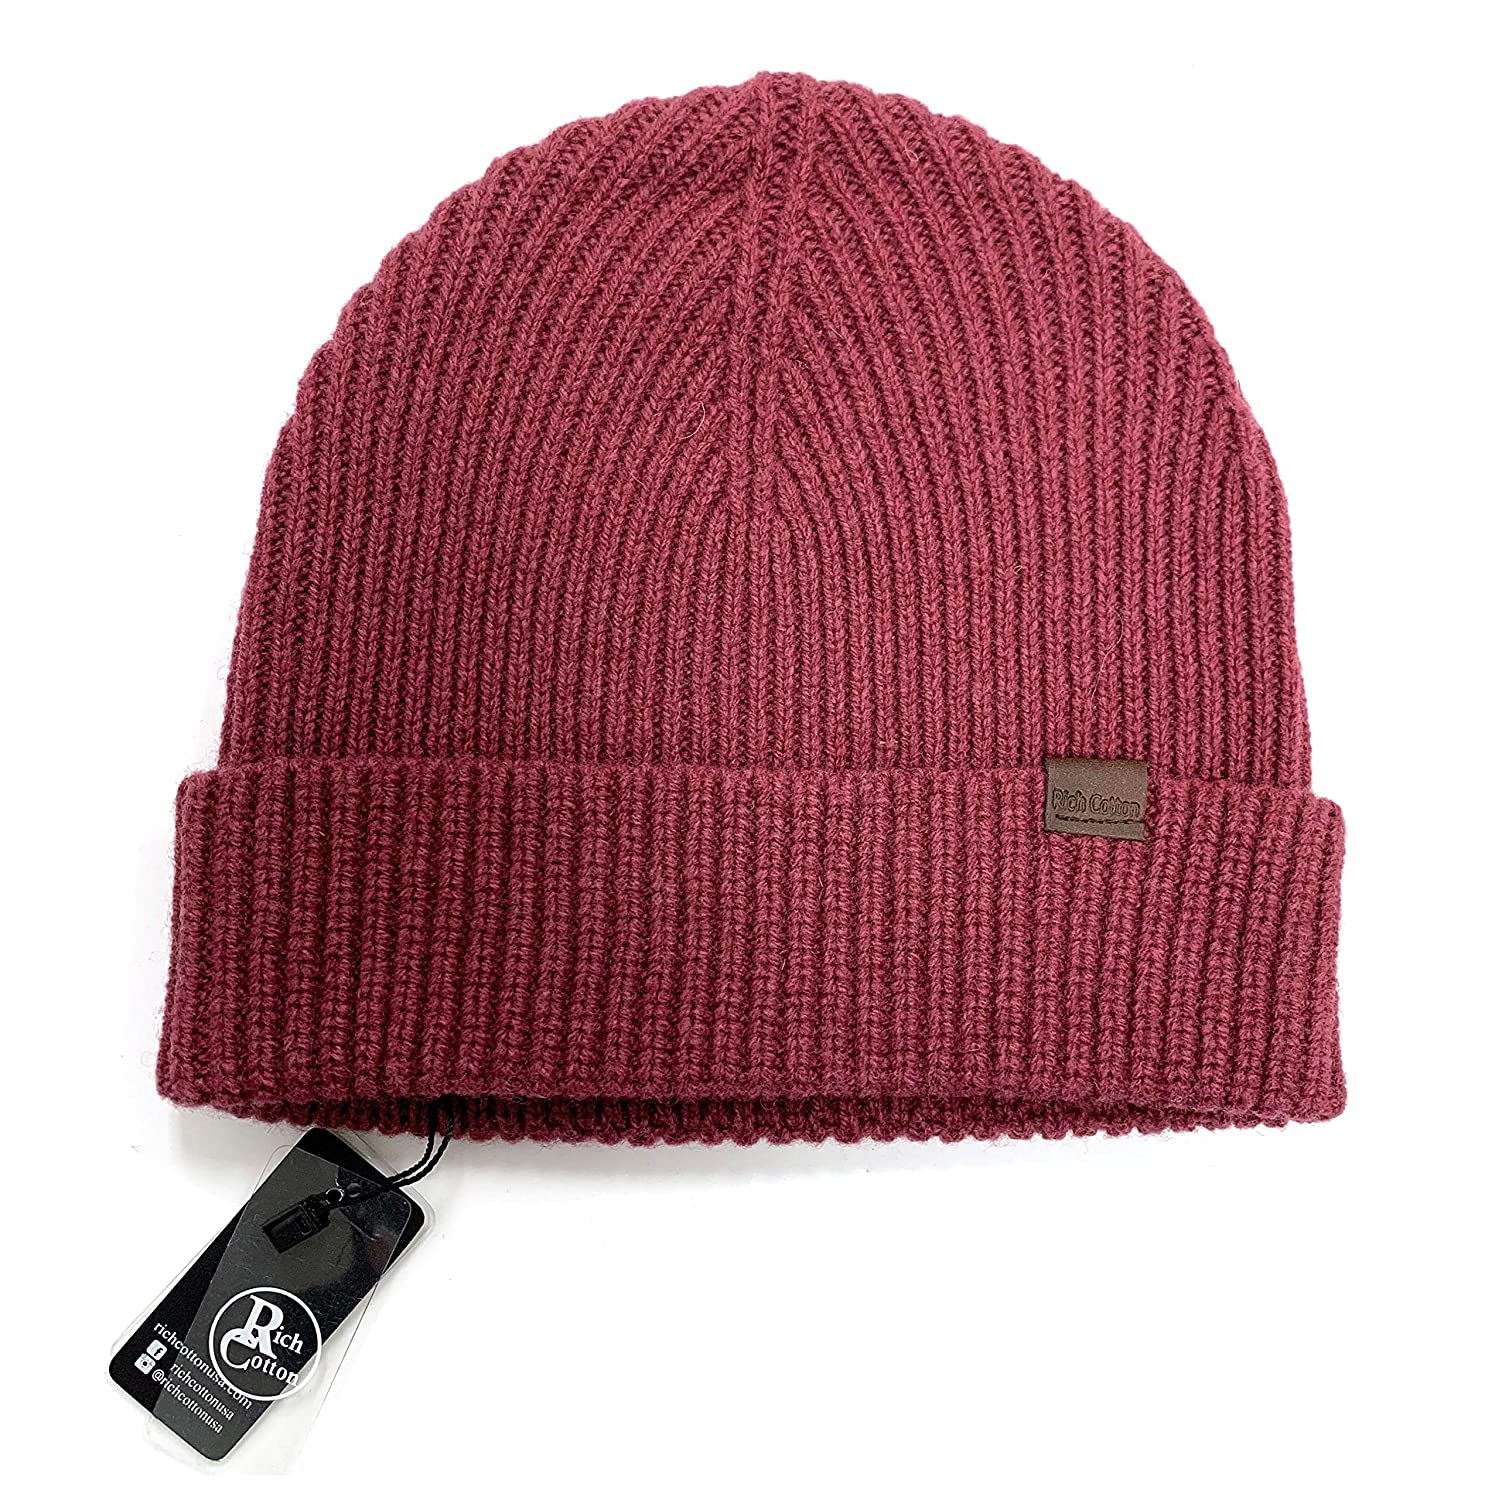 453f268c3edc7 Rich Cotton Merino Wool Skull Beanie Men Daily Warm Soft Winter Hat 100%  Merino Wool Knit Cuff Beanie Watch Cap Fisherman